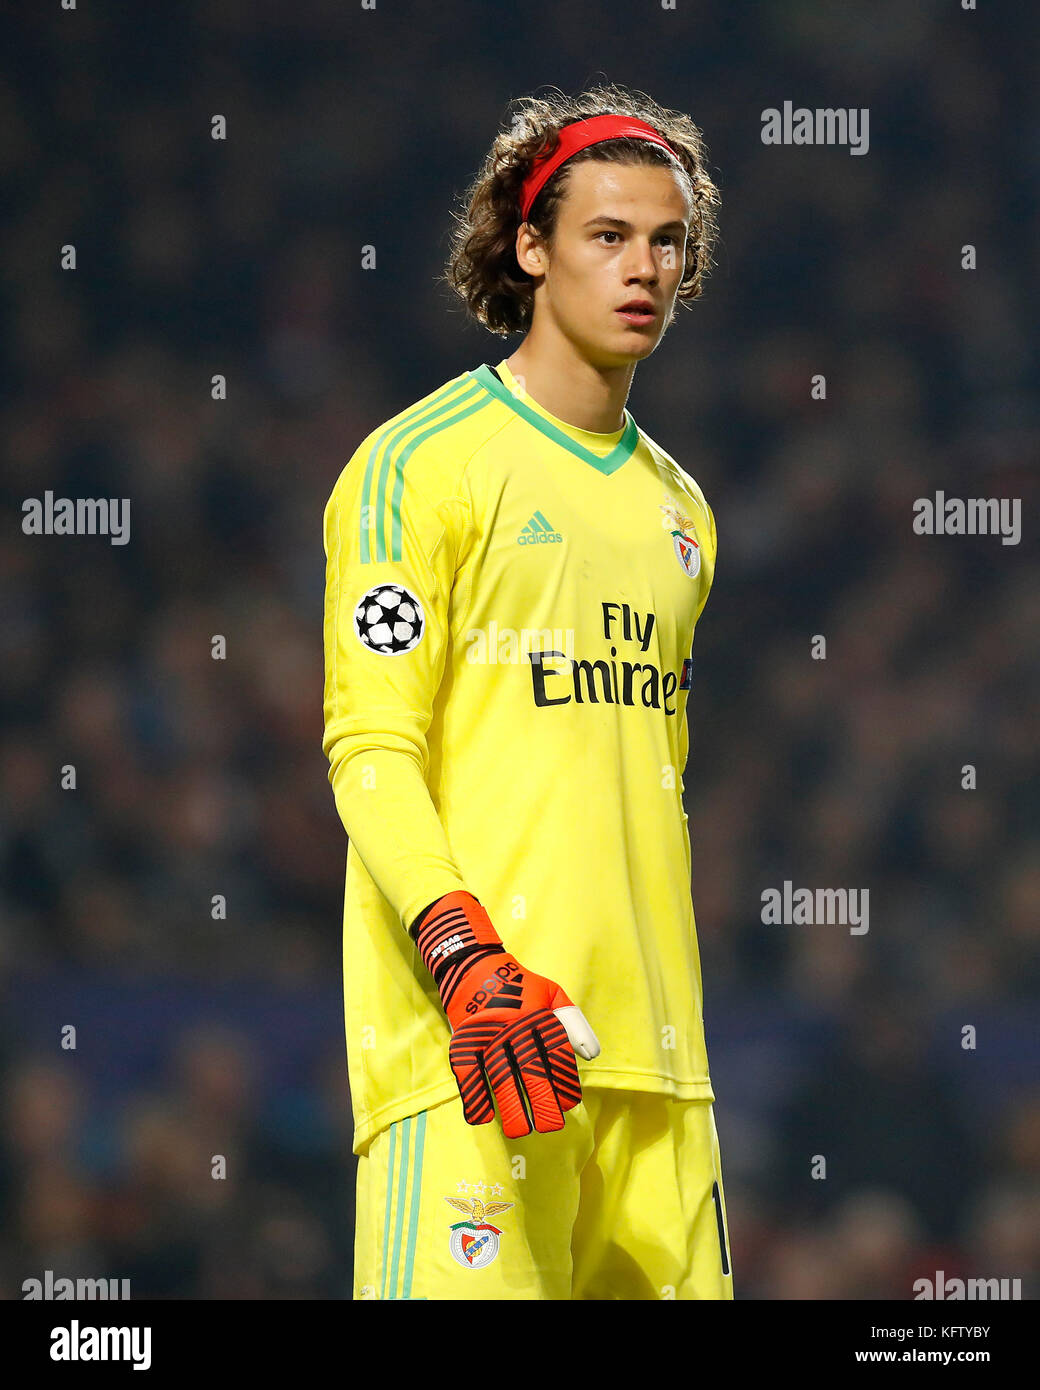 outlet store e52a6 029a5 Benfica's Goalkeeper Mile Svilar during the UEFA Champions ...